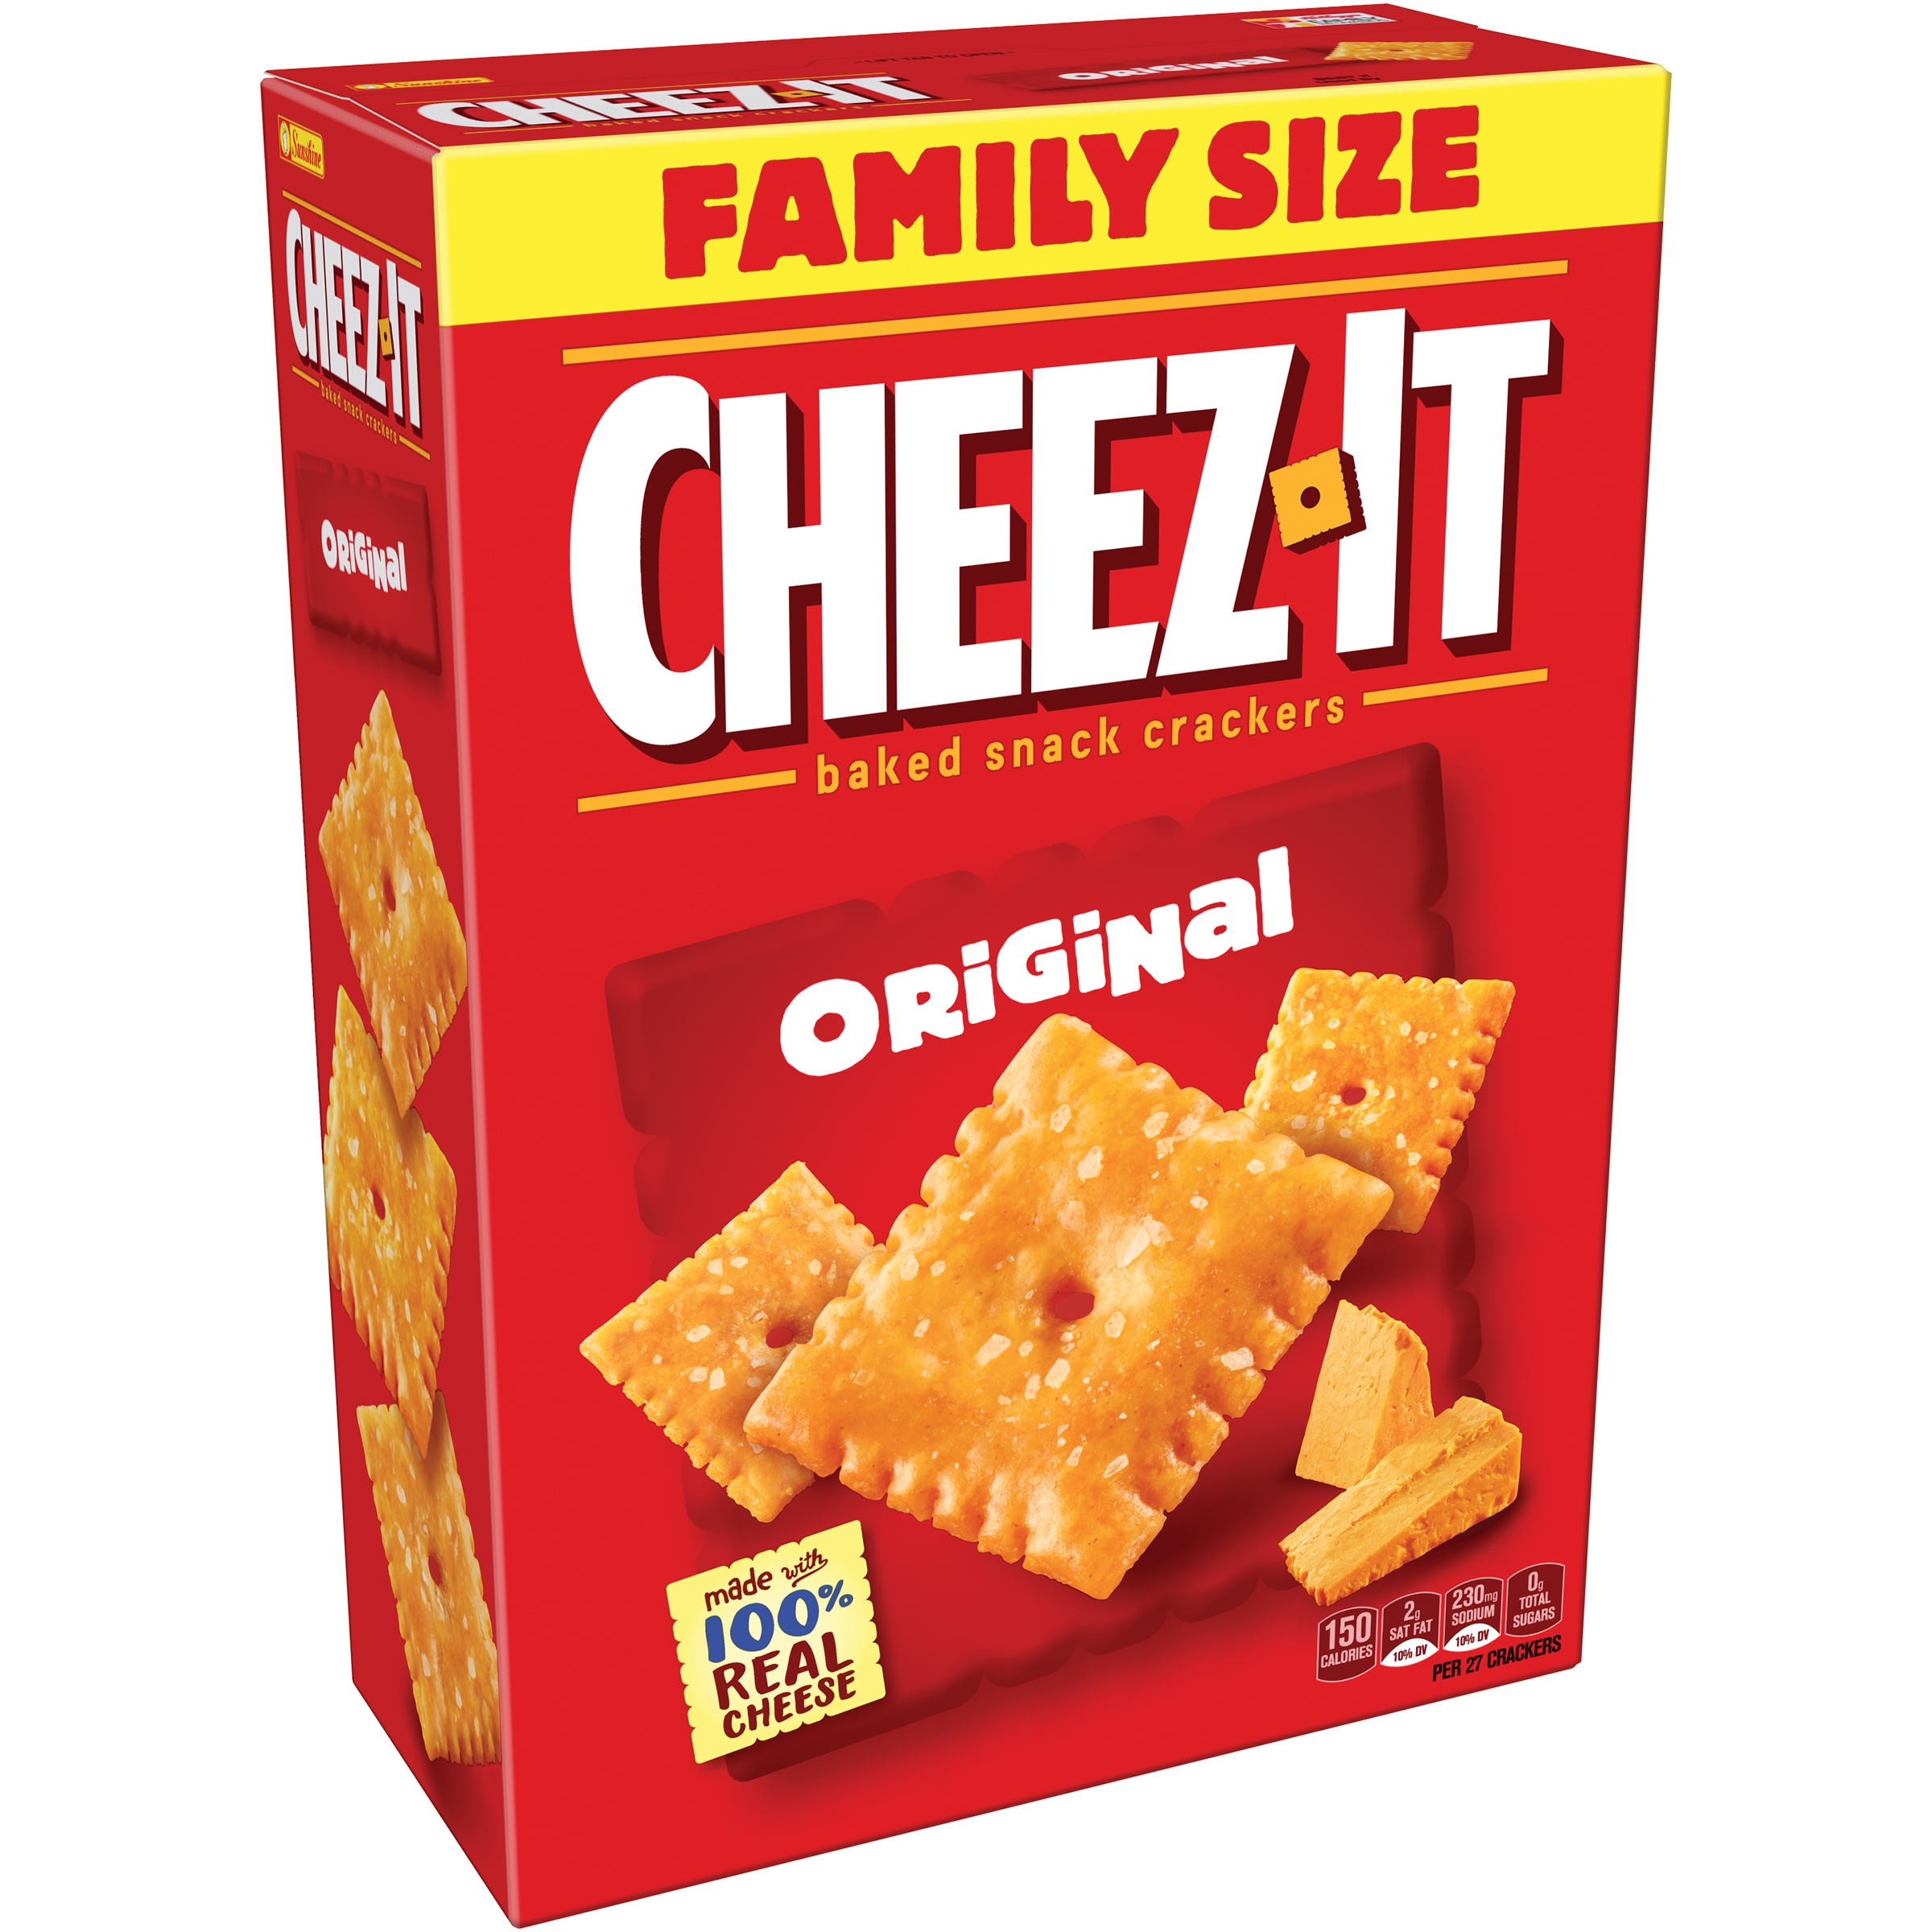 Cheez-It Original Baked Snack Crackers 21 oz. Box